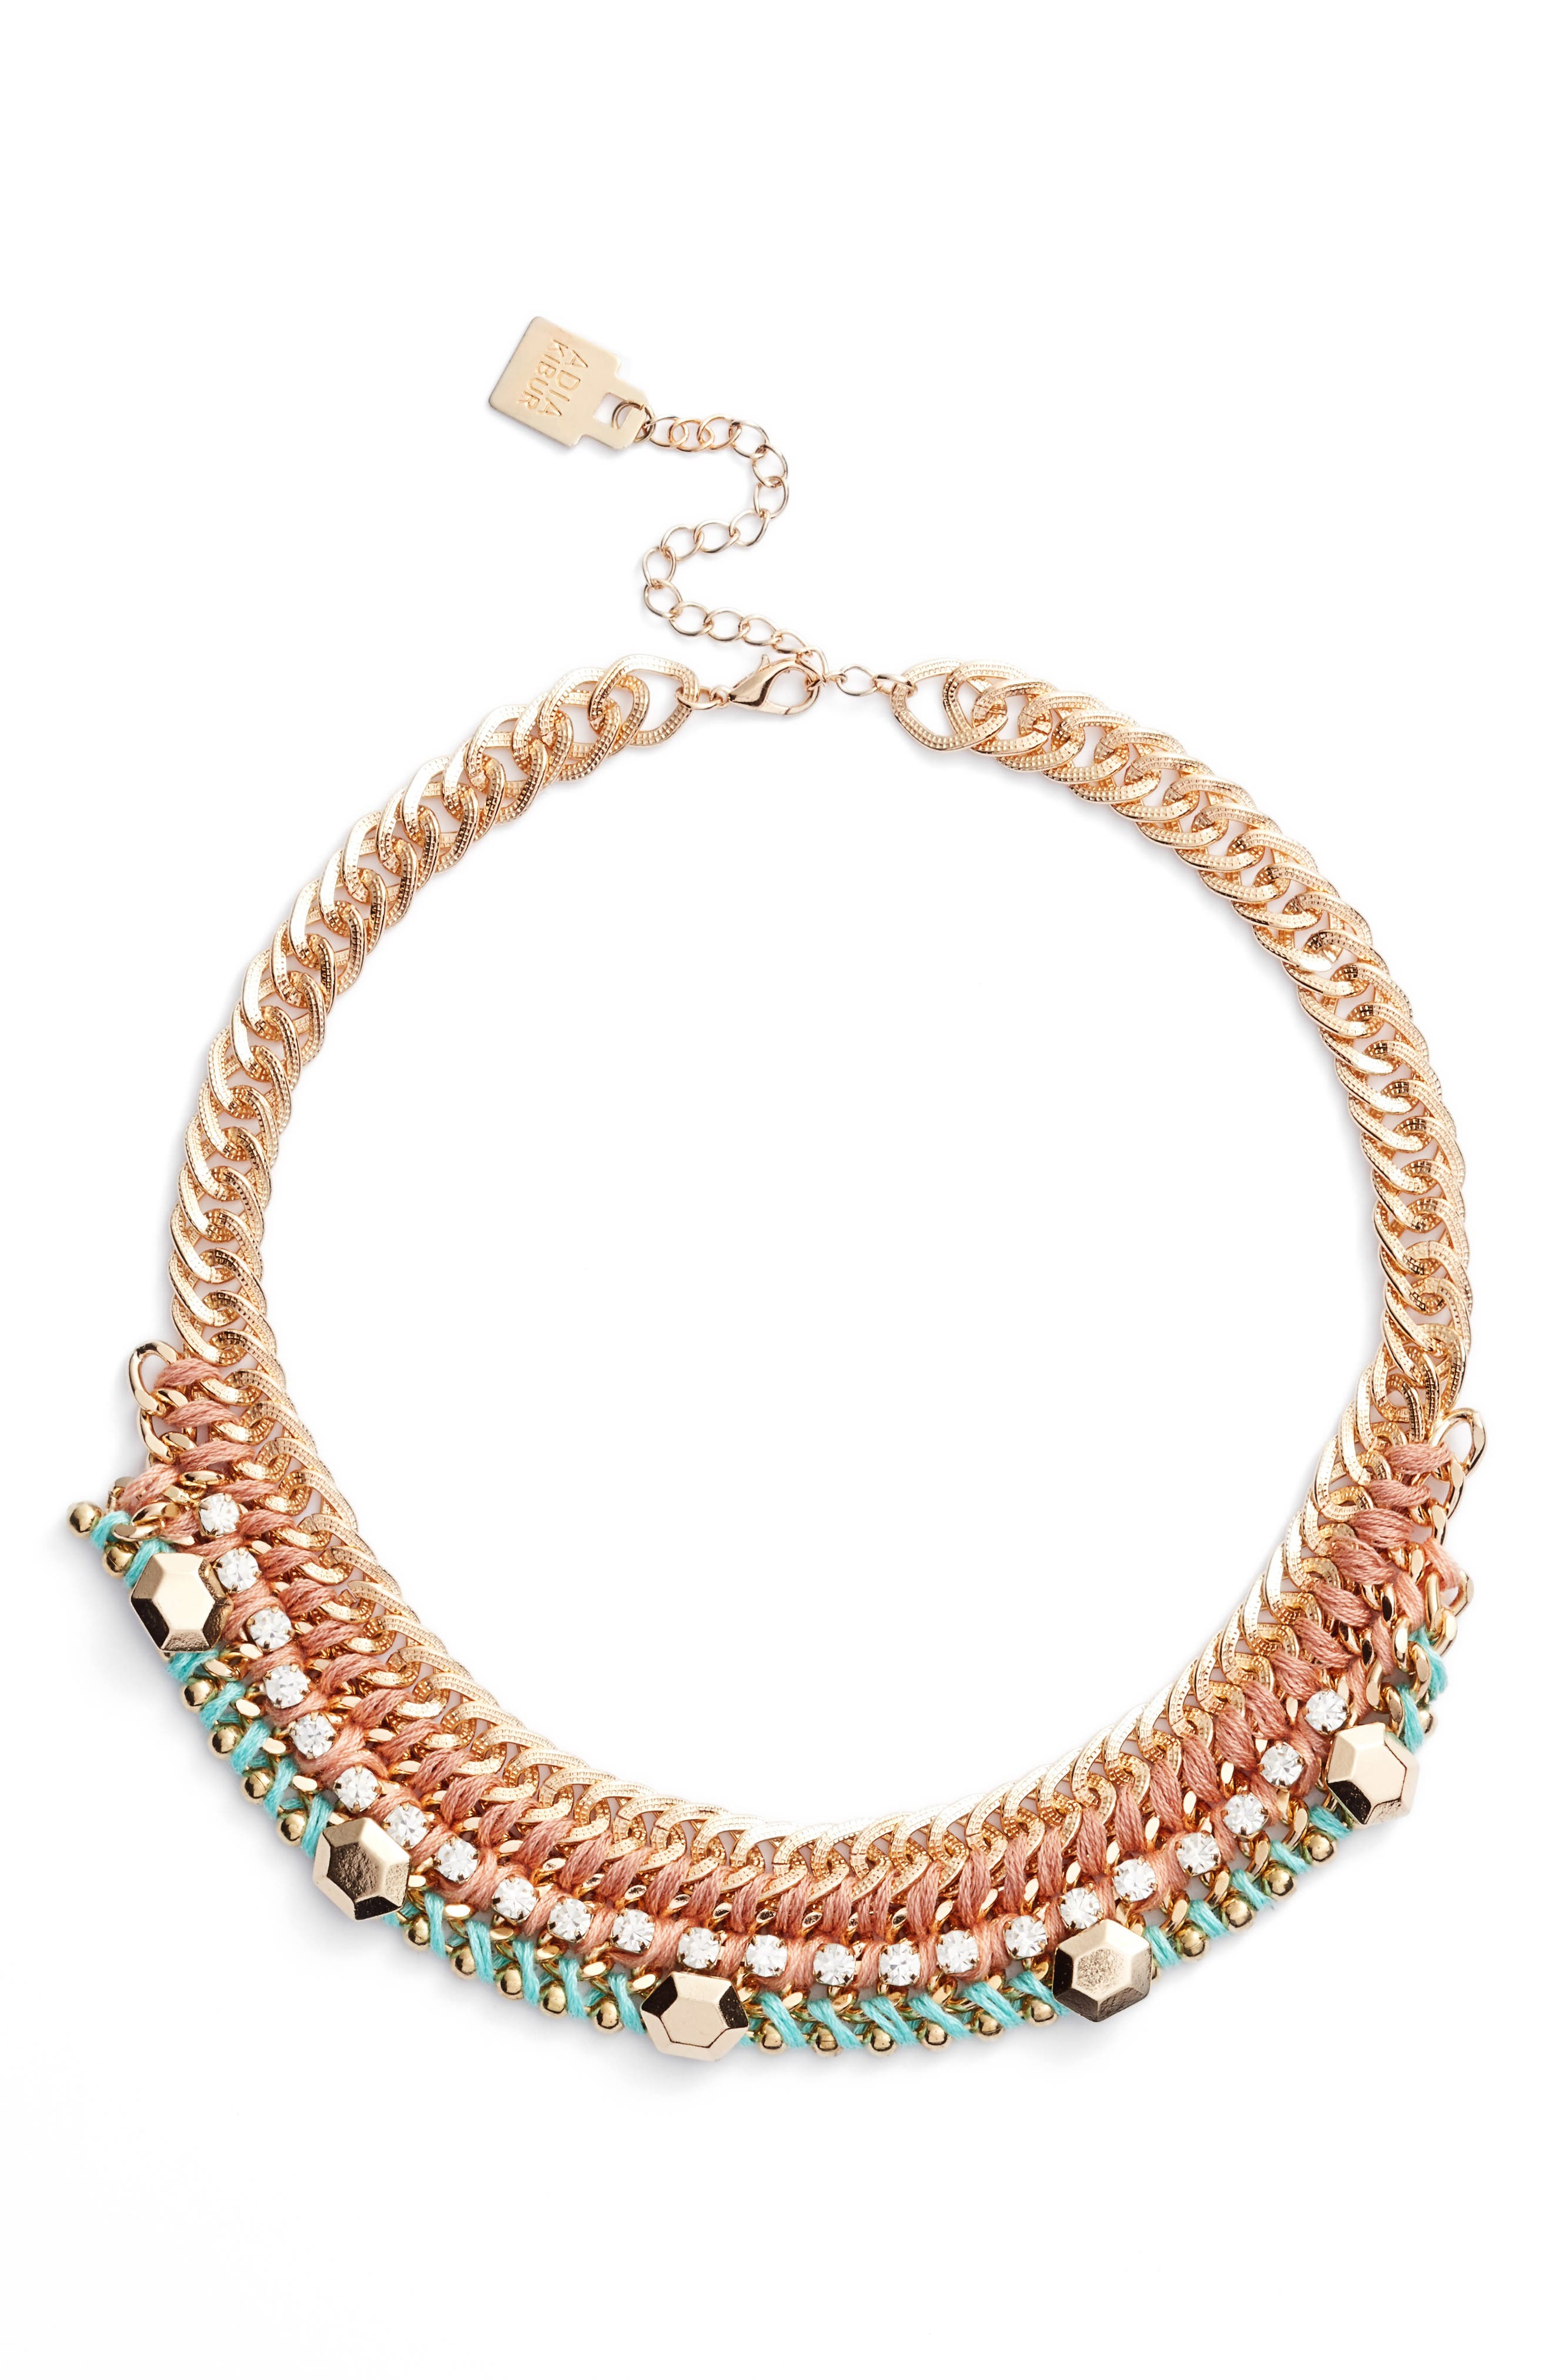 Braided Chain Necklace,                             Main thumbnail 1, color,                             650